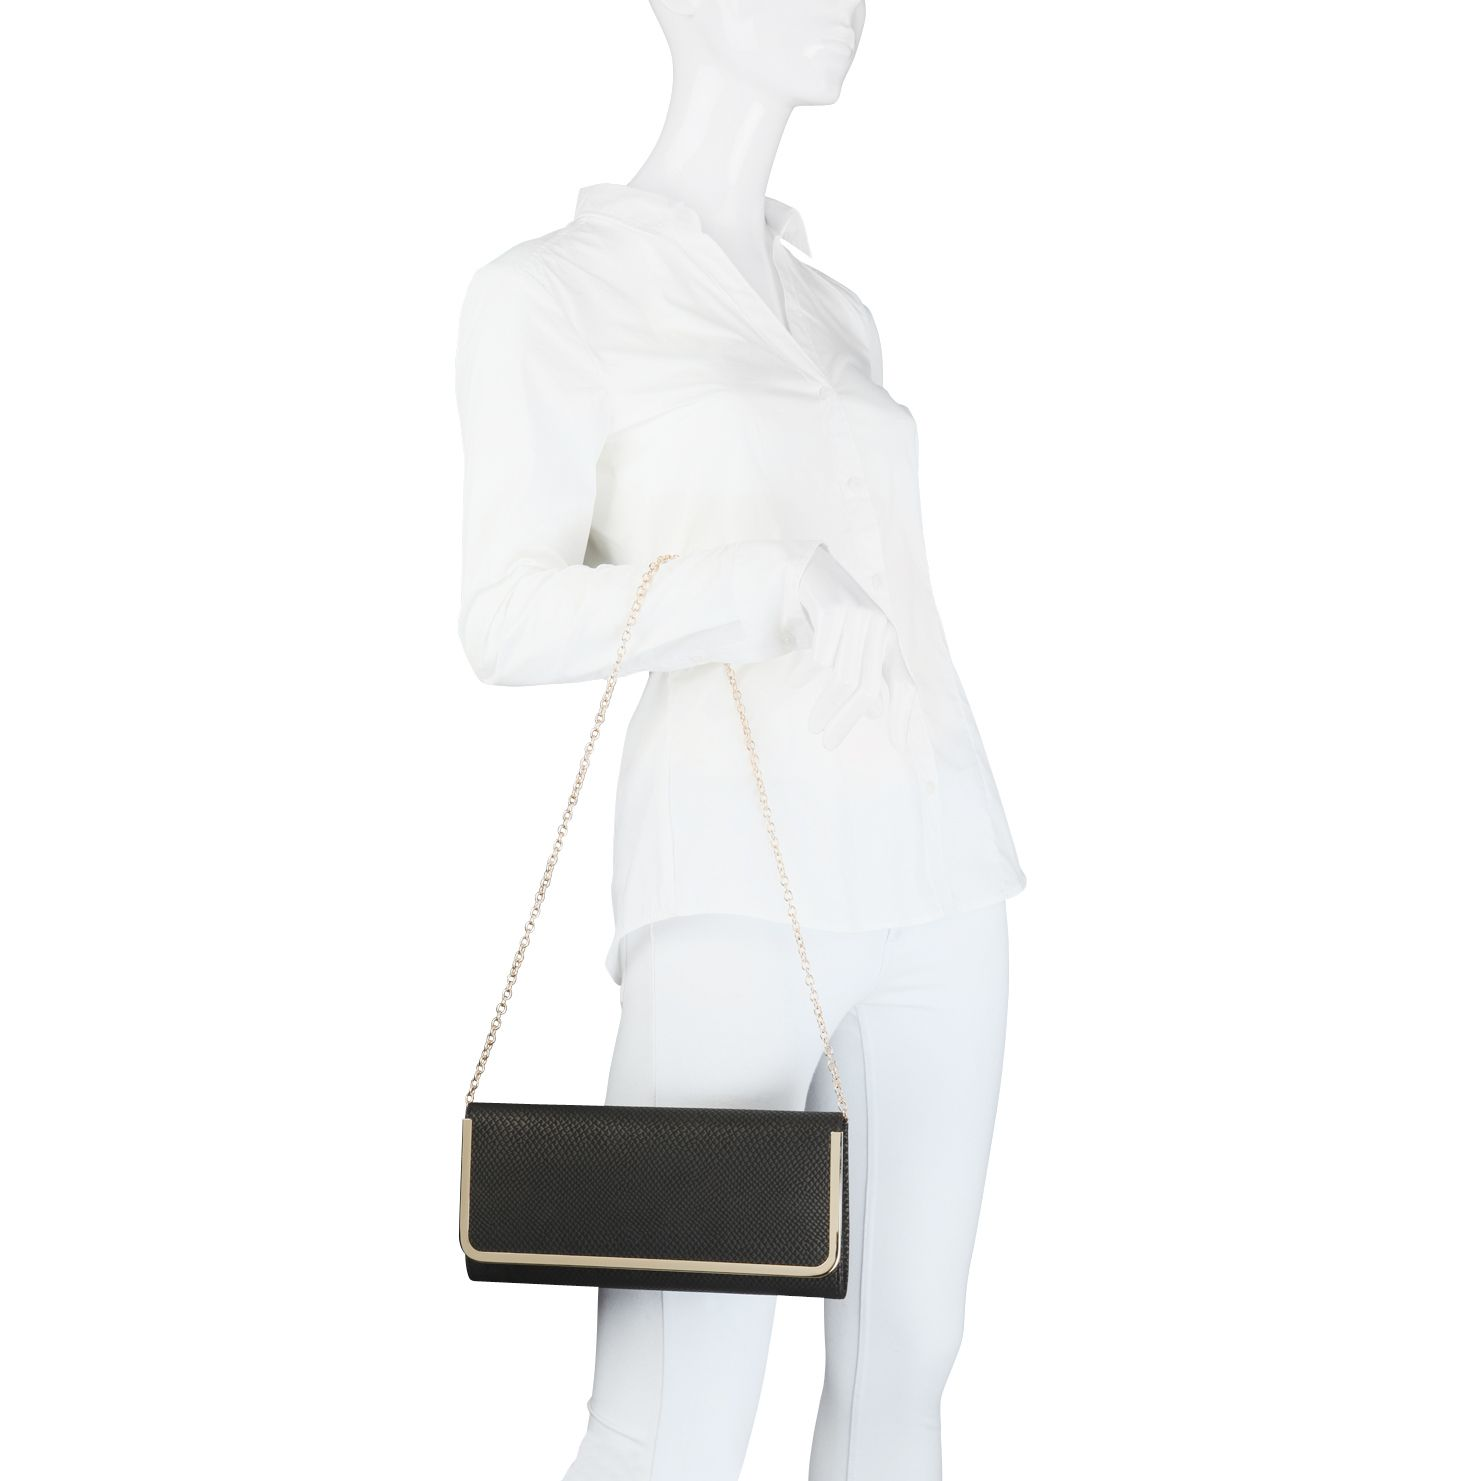 Athineum clutch bag